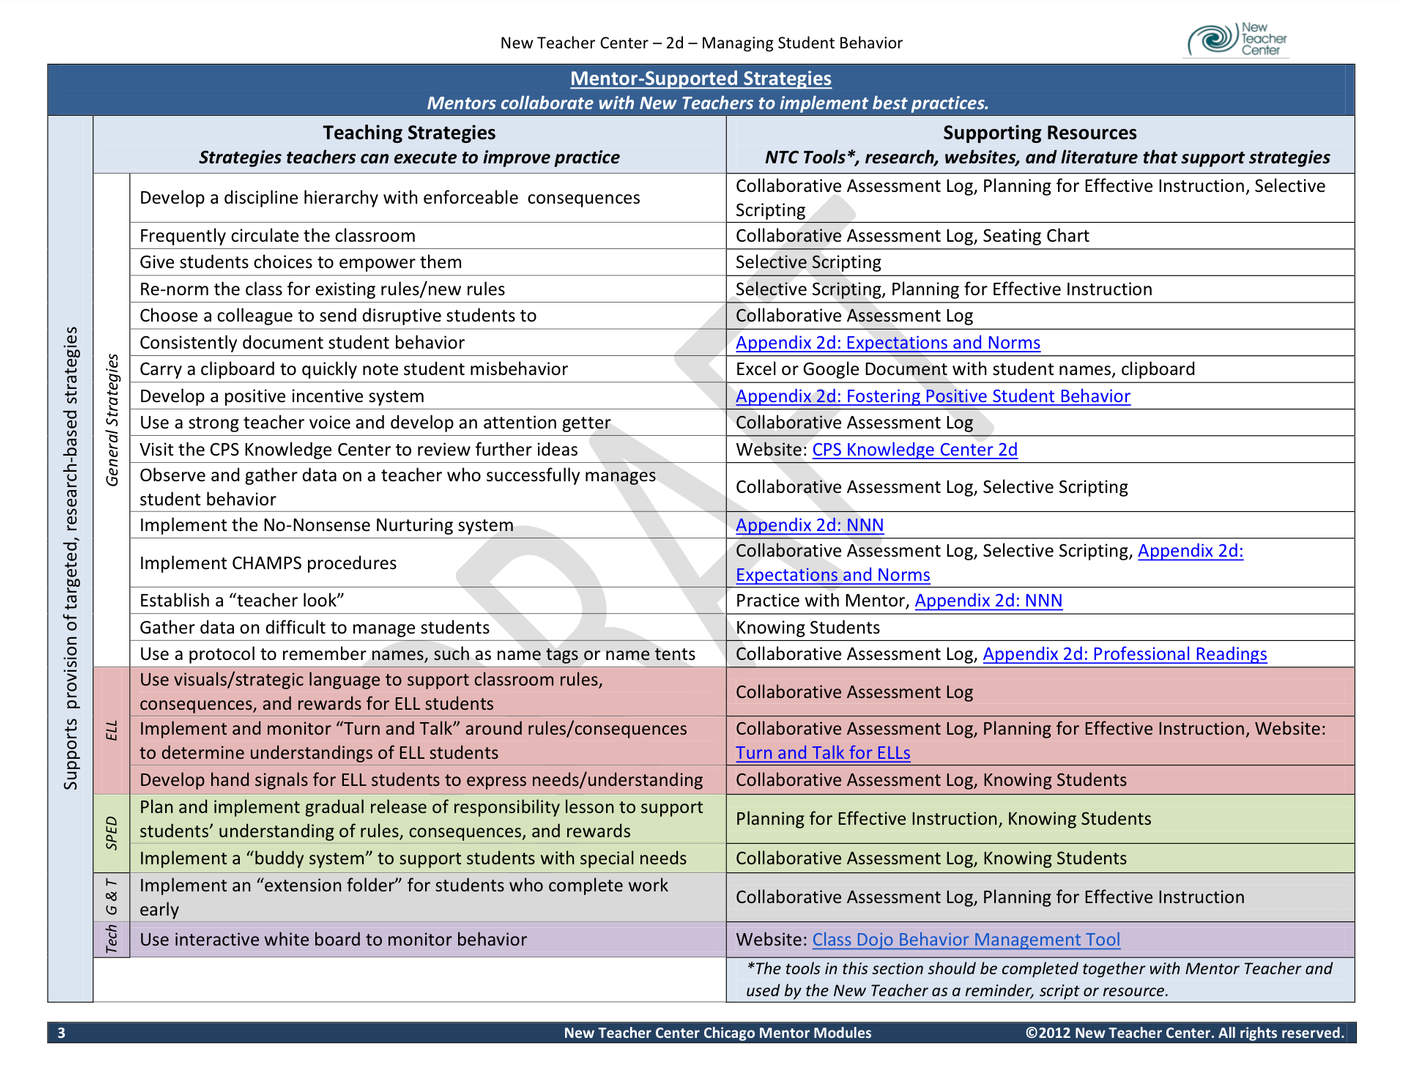 Sample page of a tool to support teacher mentors